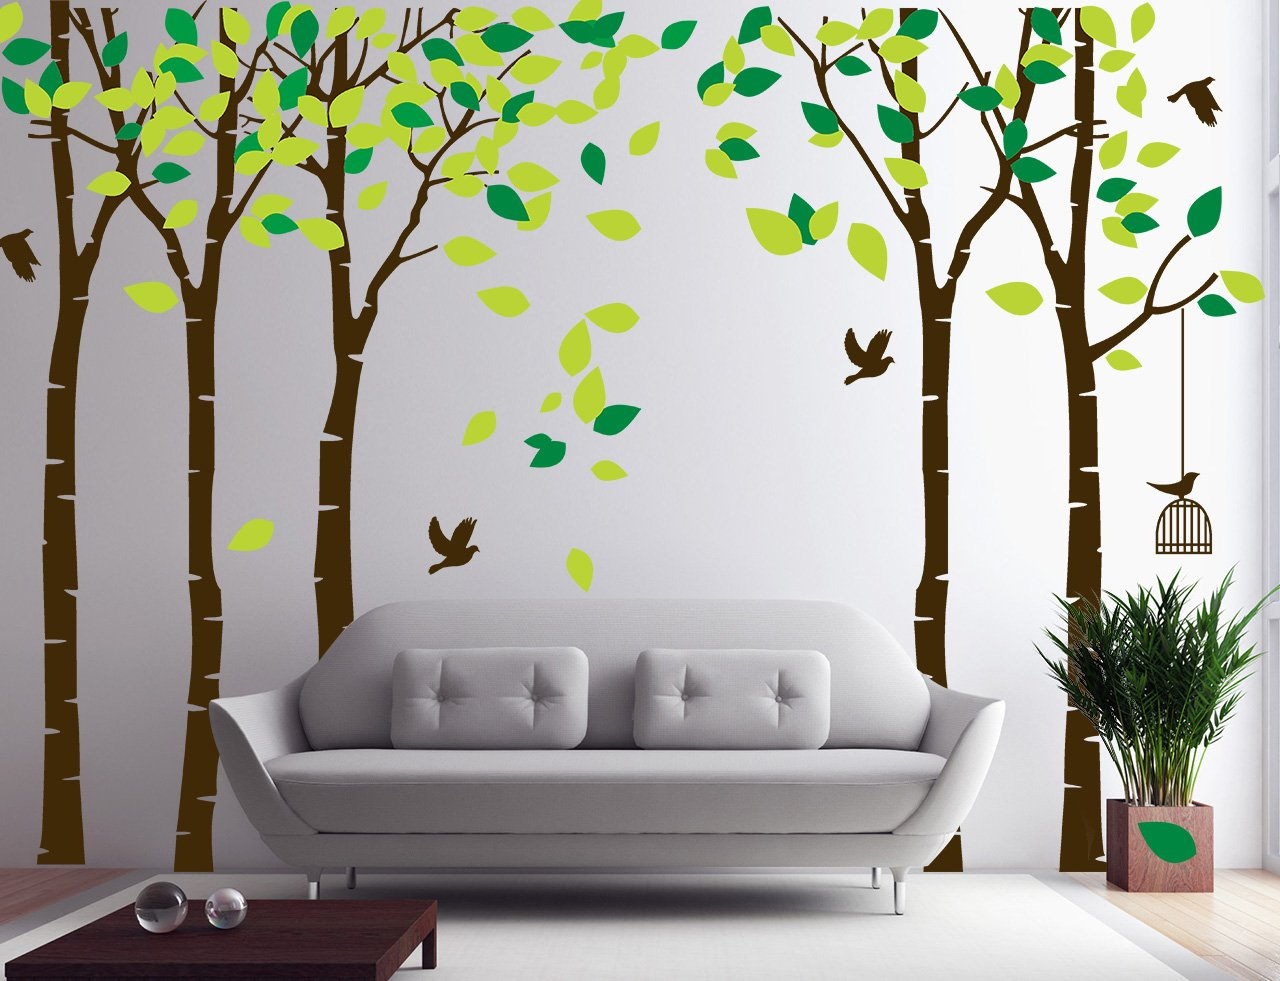 CaseFan 5 Trees Wall Decal Forest Mural Paper For Bedroom